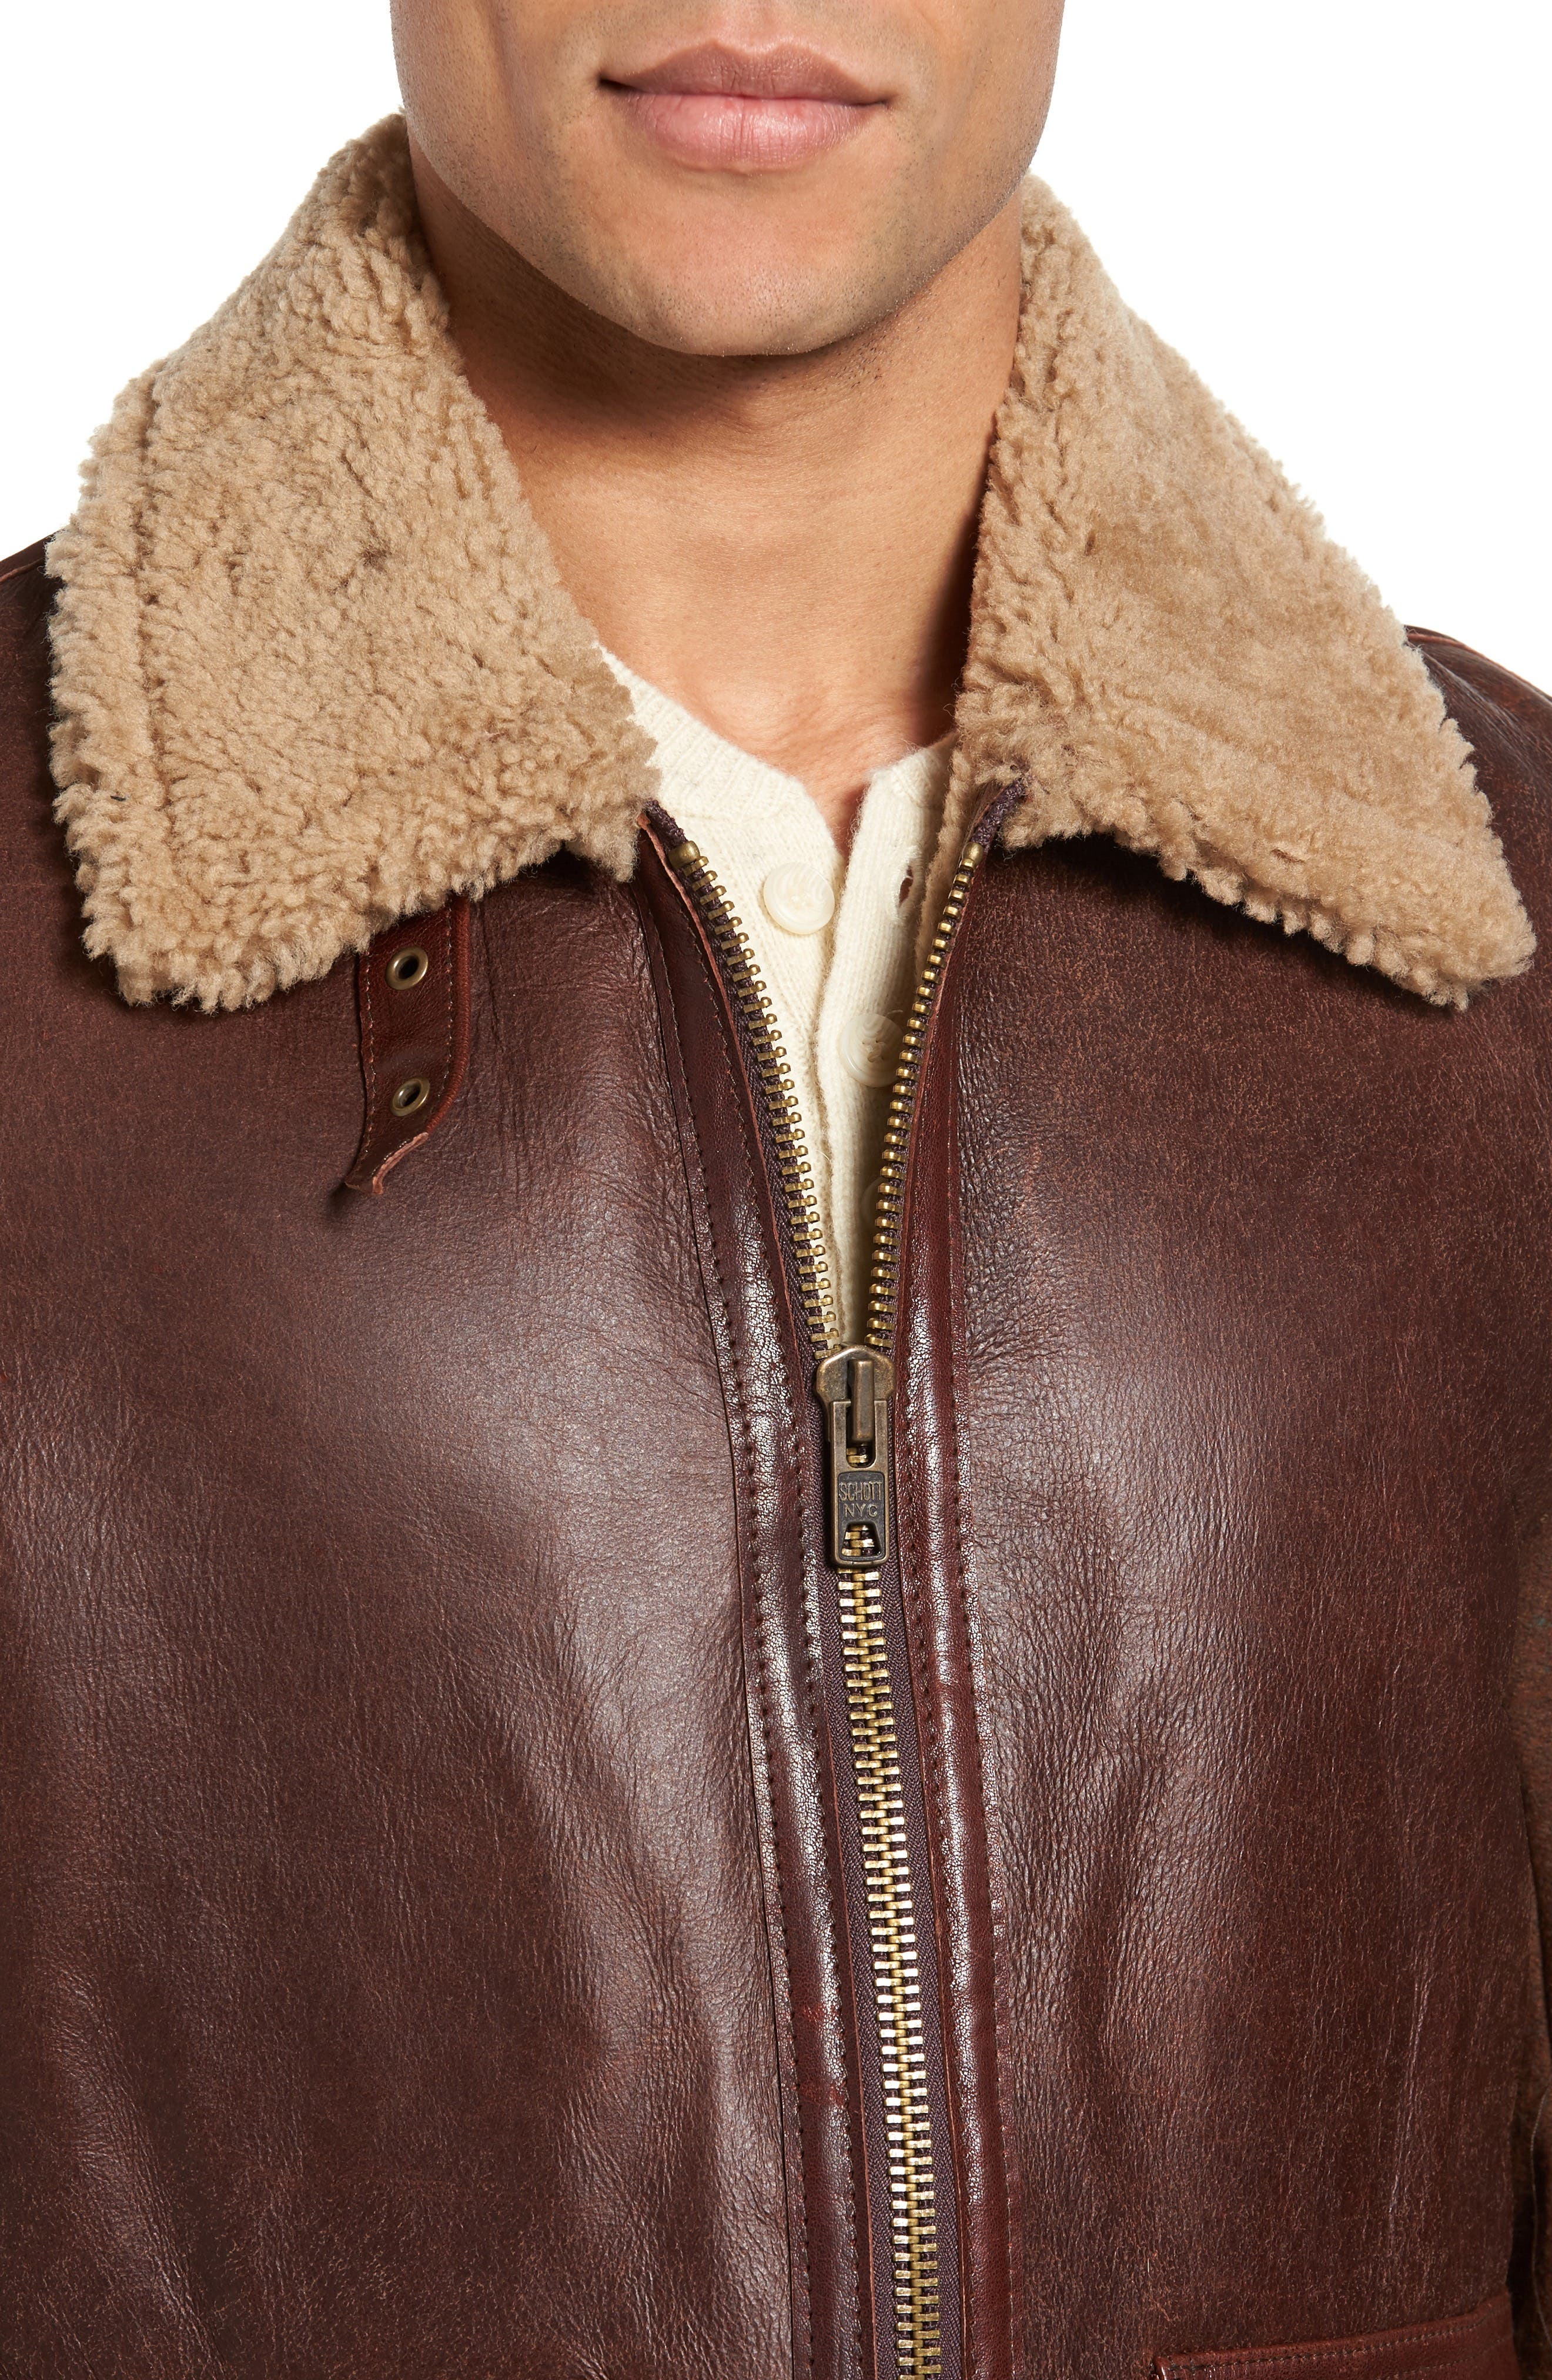 Mixed Media Flight Jacket with Genuine Shearling Collar & Lining,                             Alternate thumbnail 4, color,                             Brown